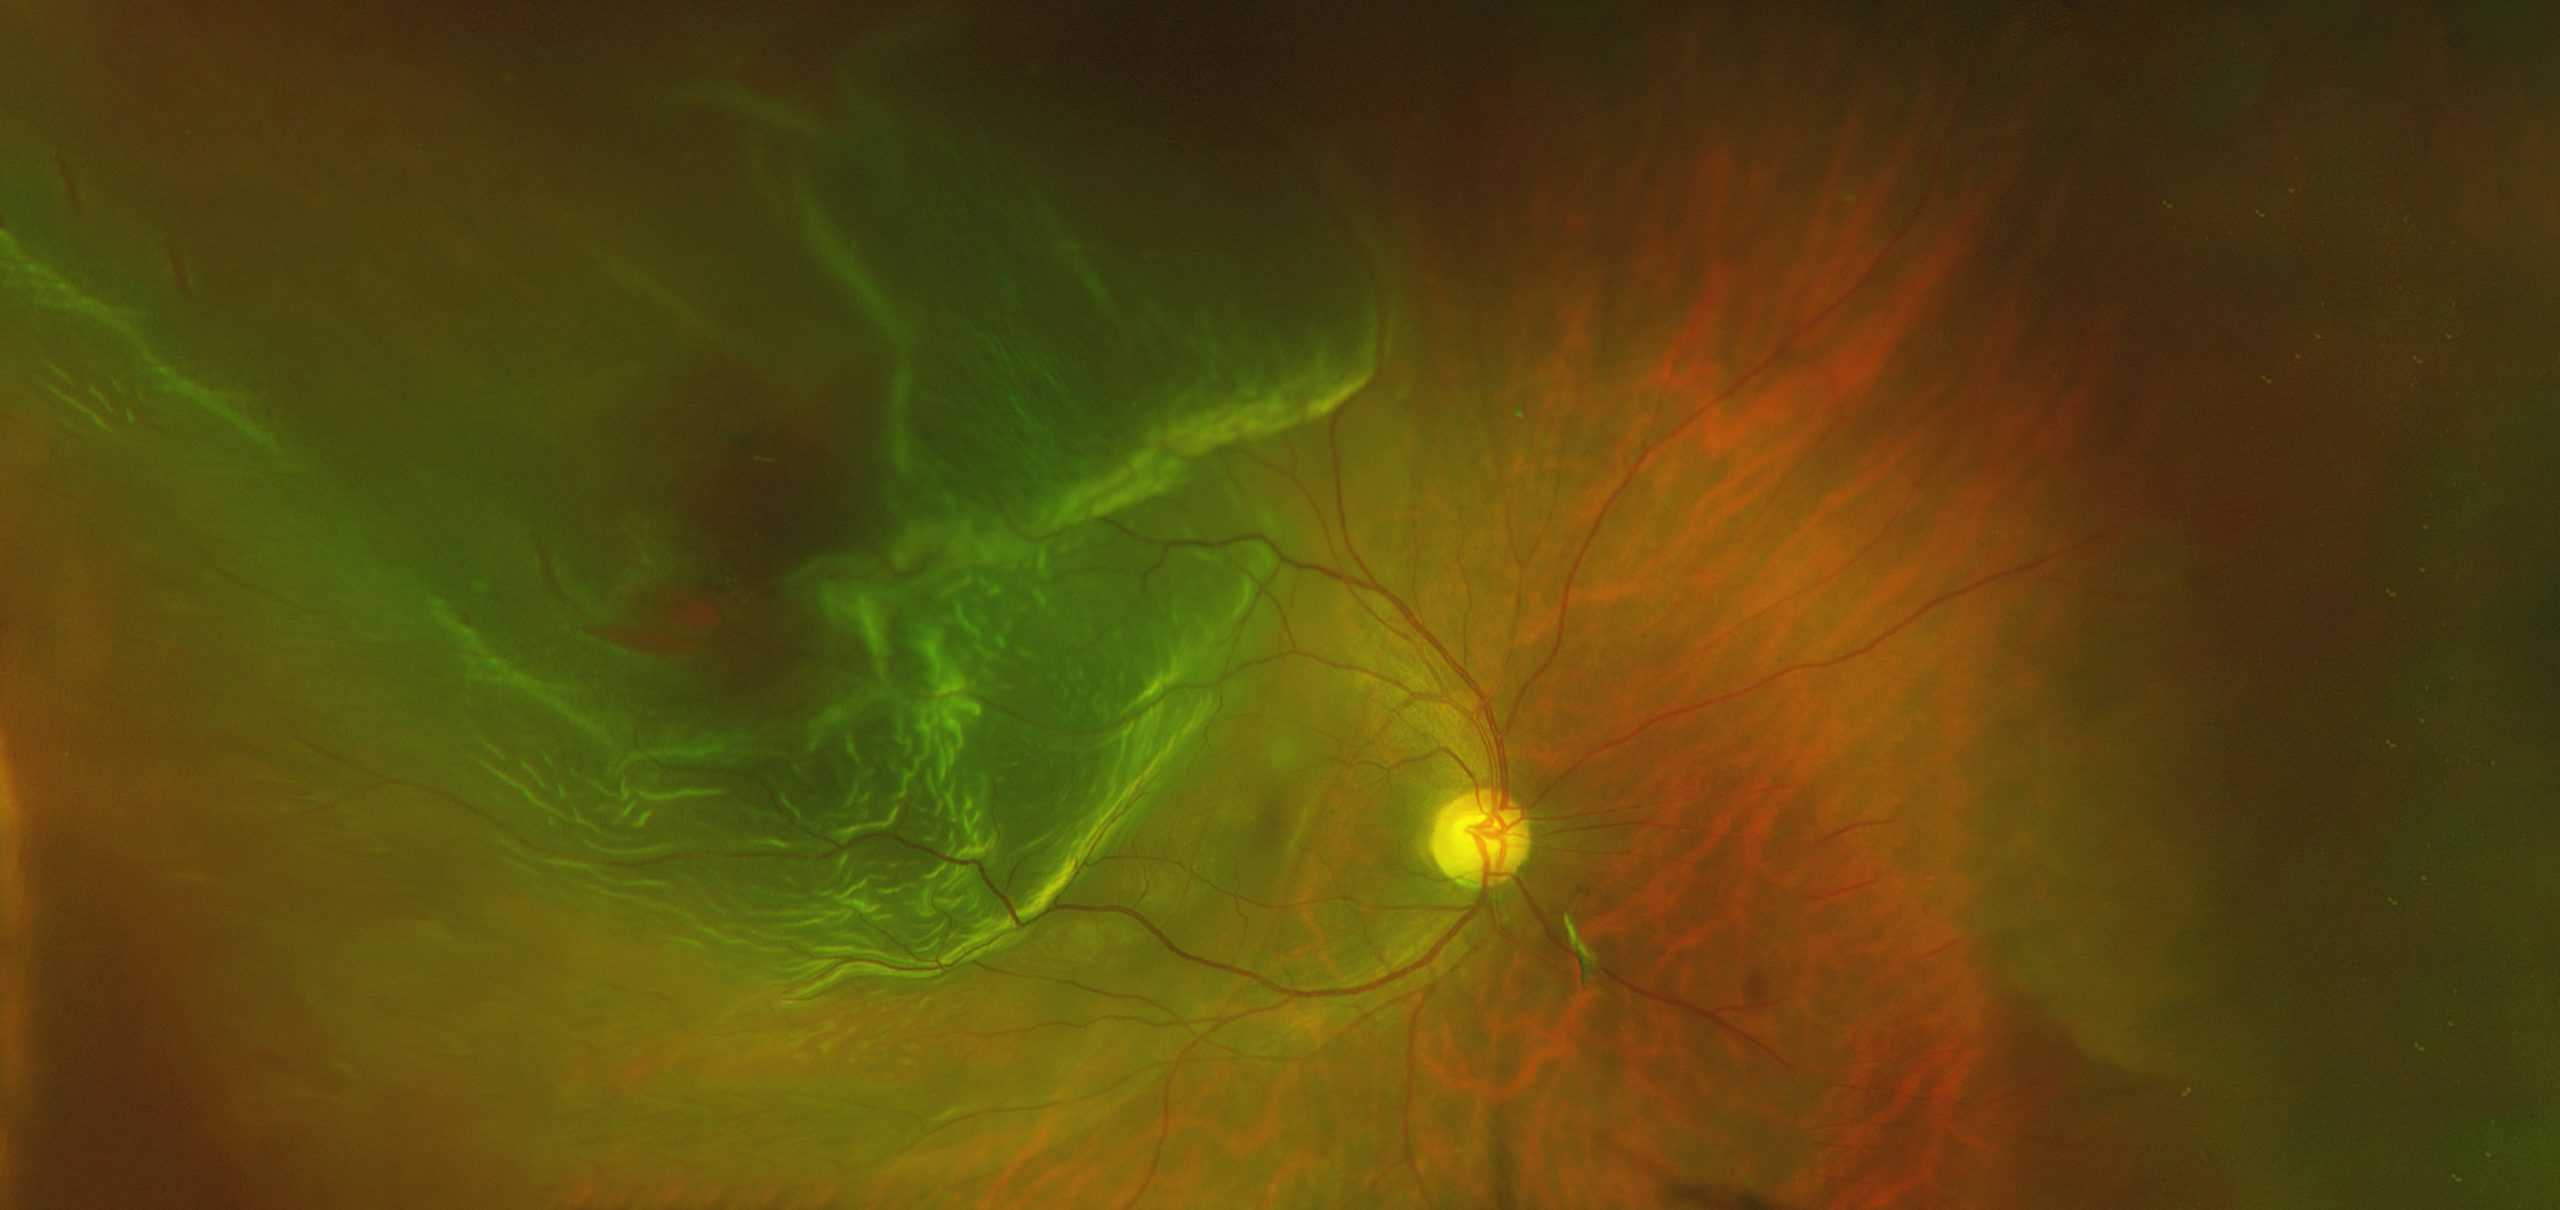 rETINAL IMAGING home page image 2 rd scaled